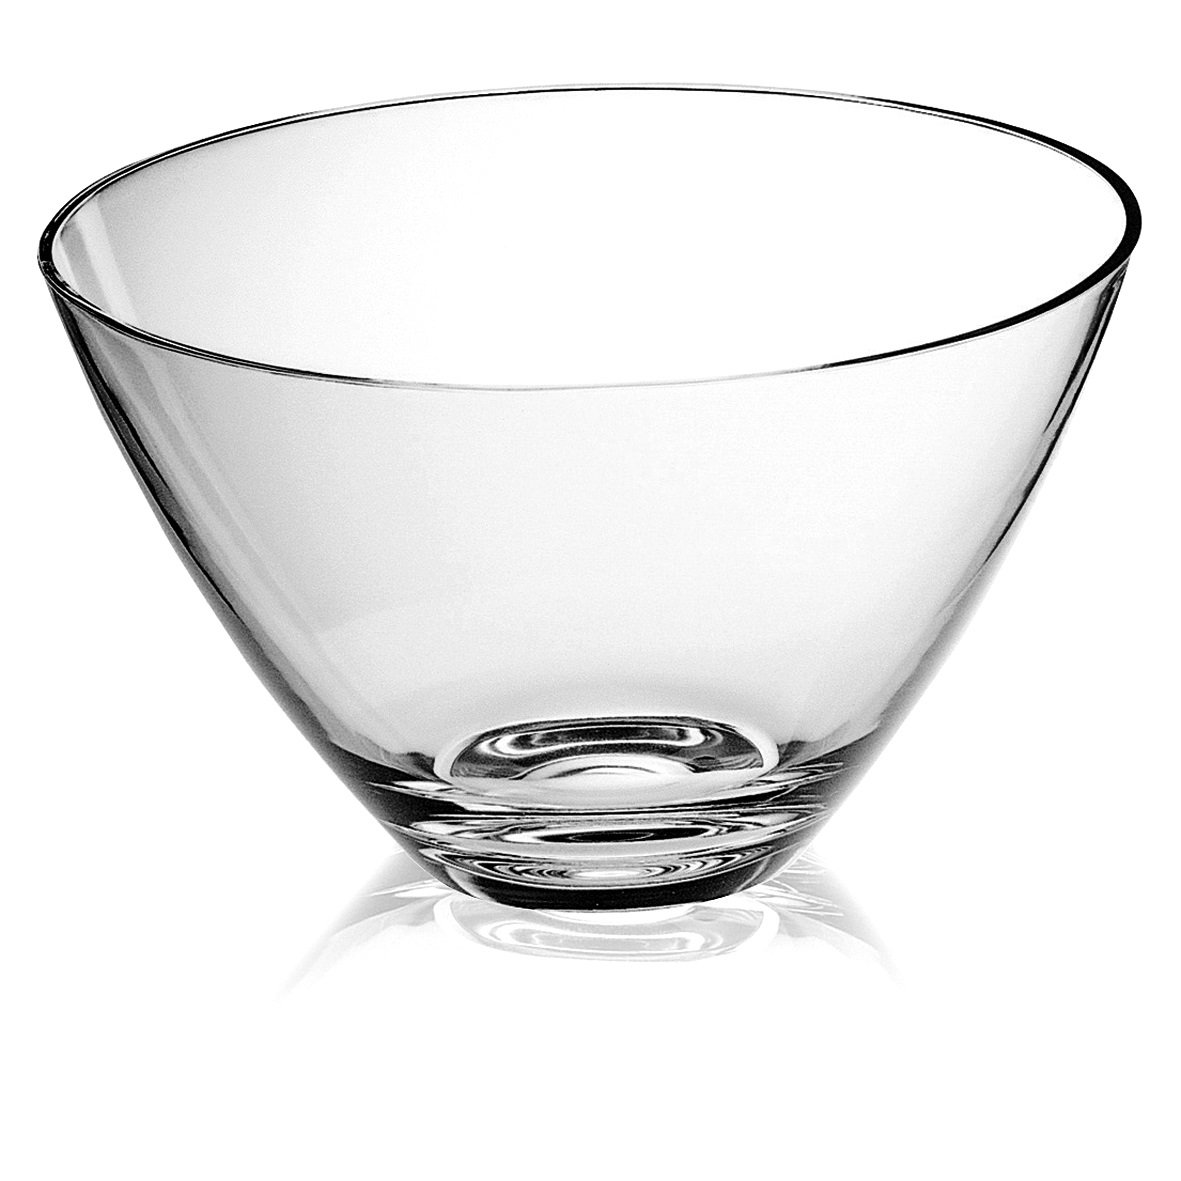 Majestic Gifts European Glass Bowls (Set of 6), 4.75''/Small, Clear